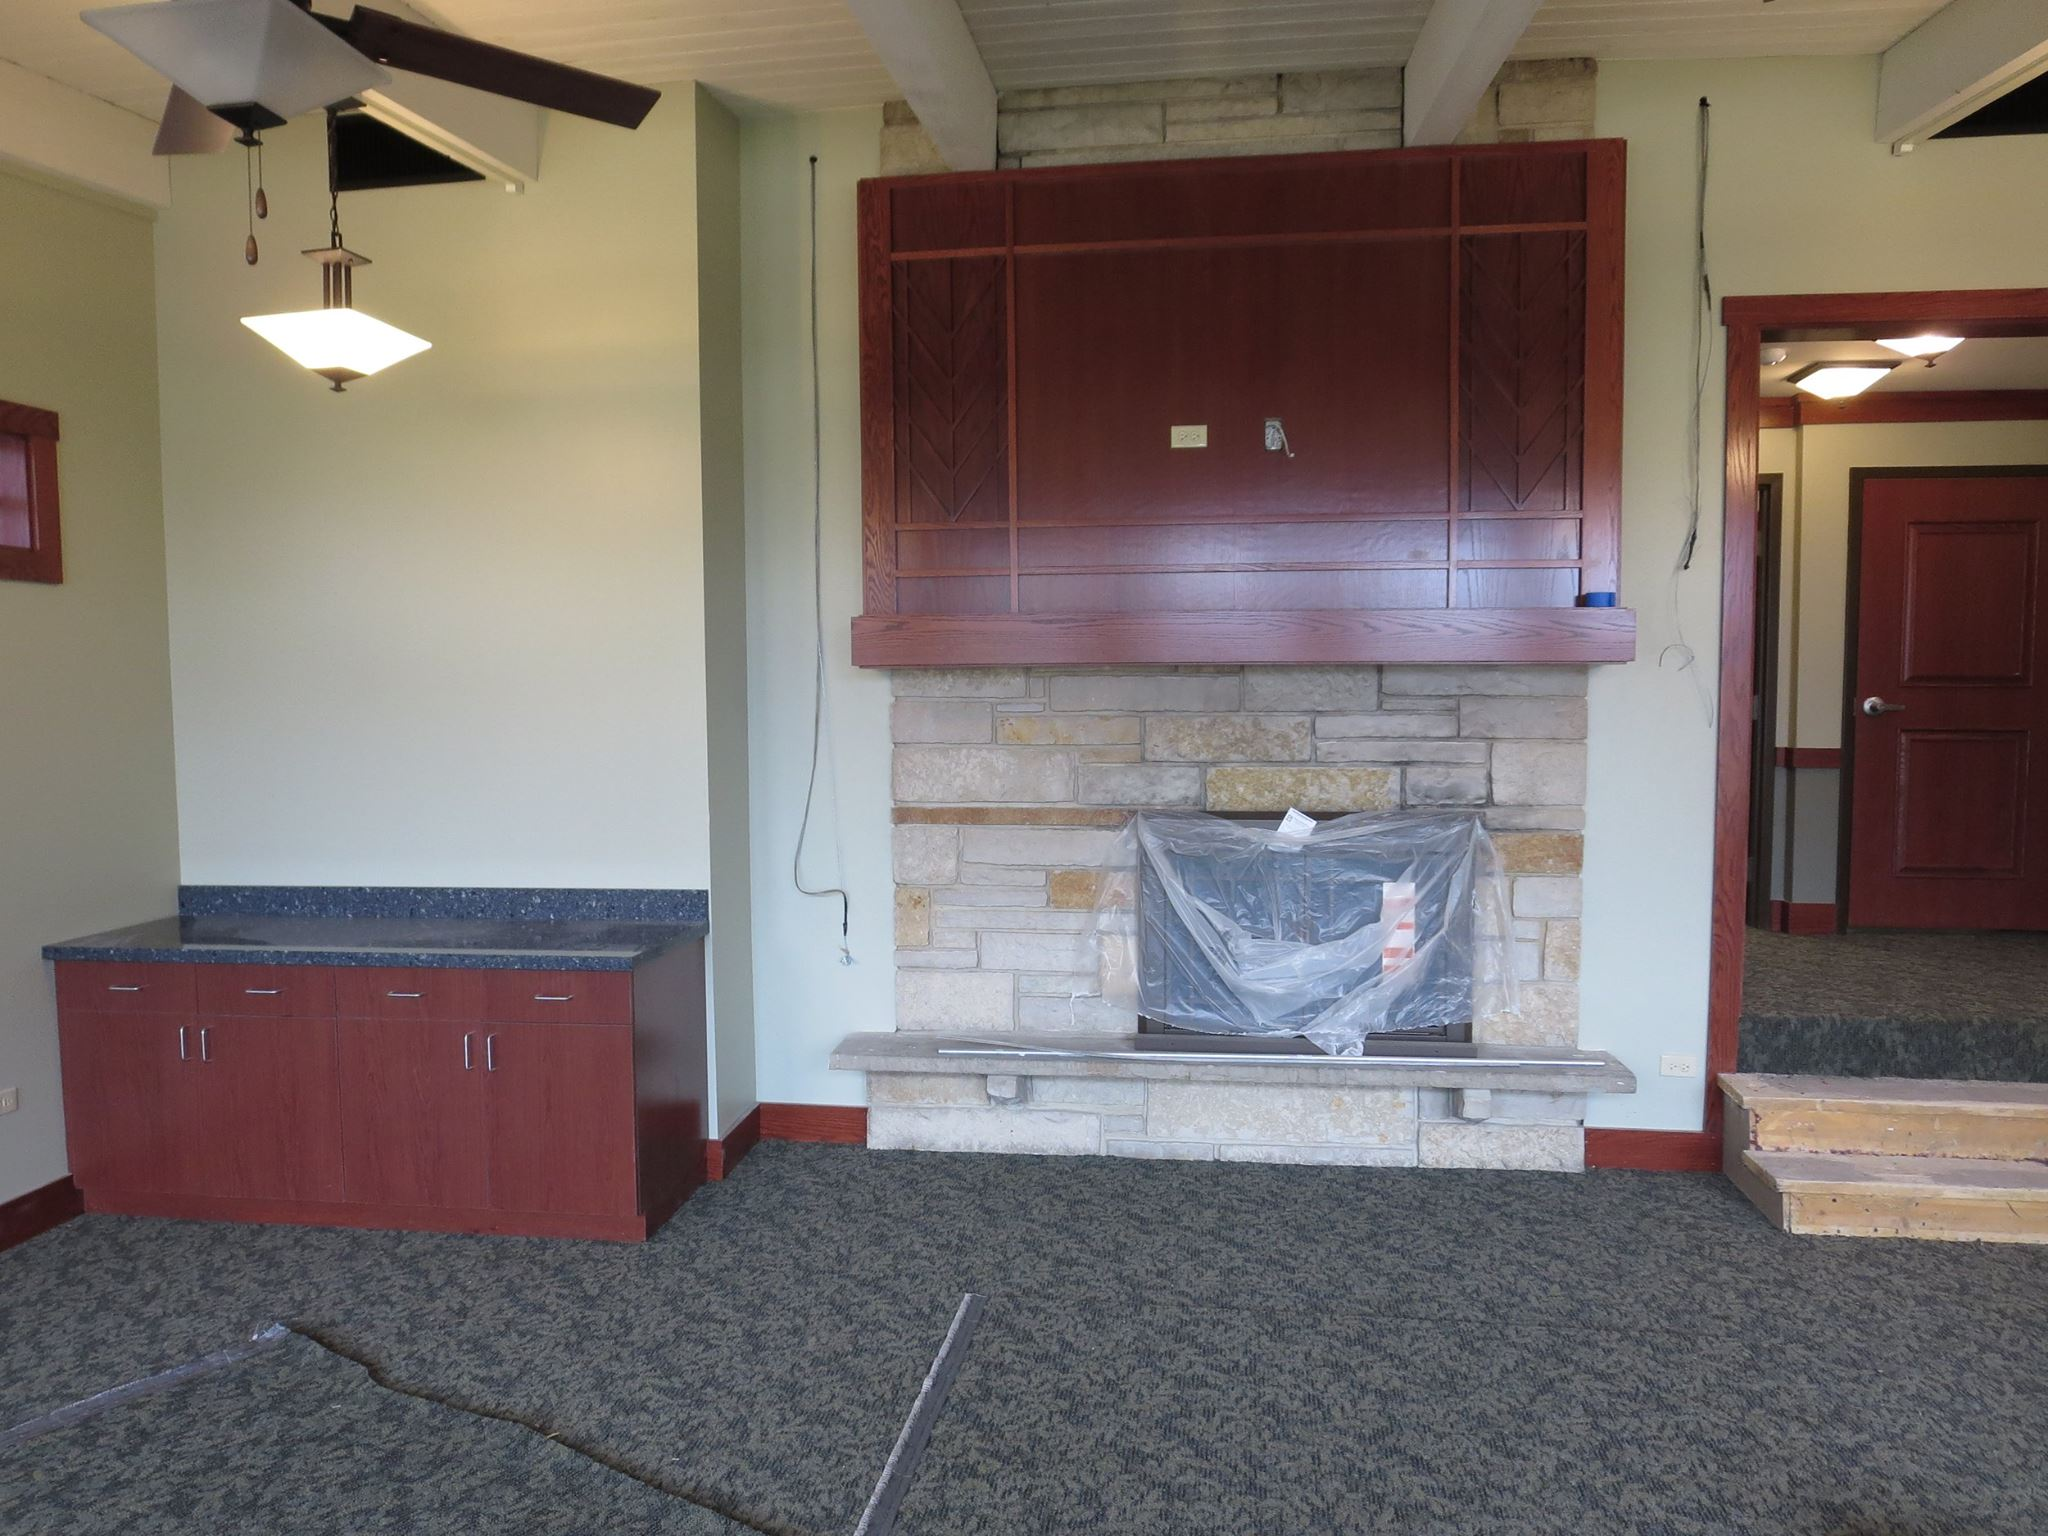 fireplace under construction.jpg